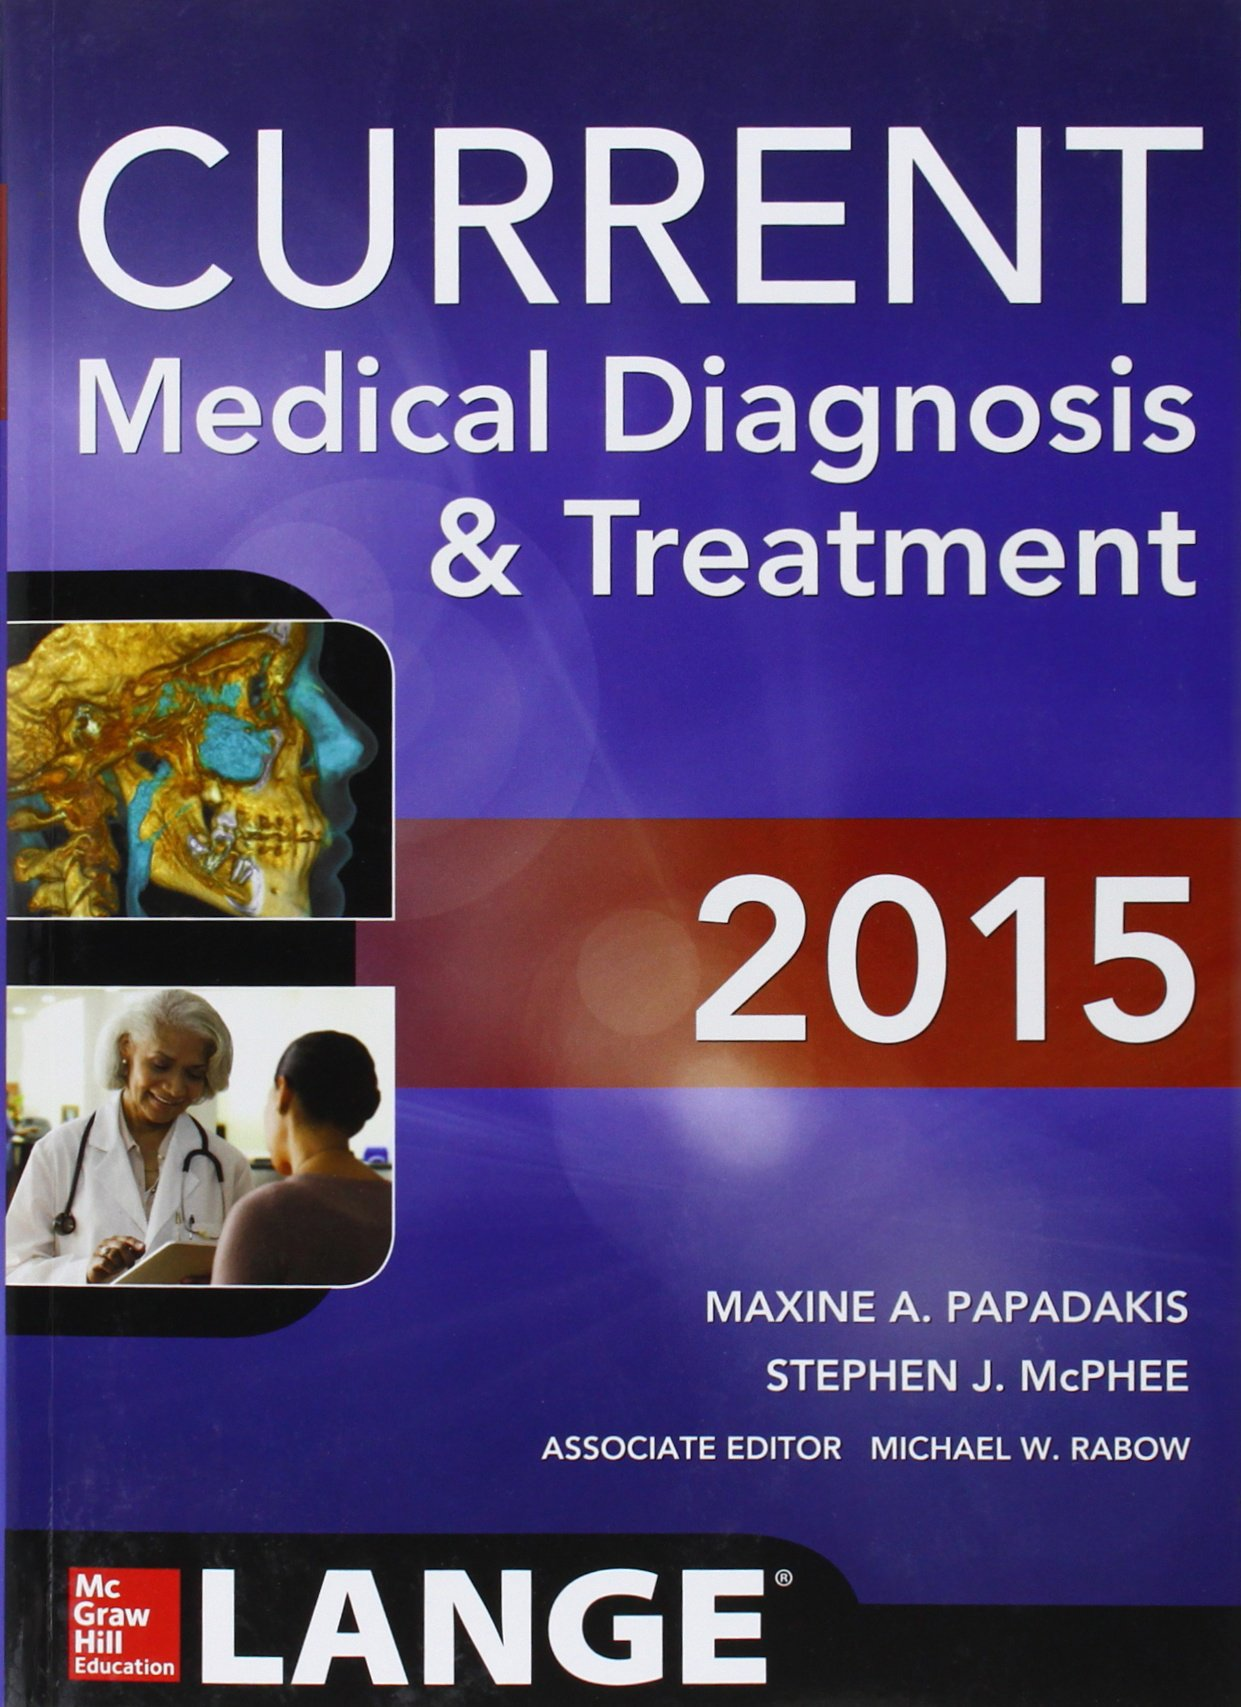 Buy current medical diagnosis and treatment 2015 lange book online buy current medical diagnosis and treatment 2015 lange book online at low prices in india current medical diagnosis and treatment 2015 lange reviews fandeluxe Image collections